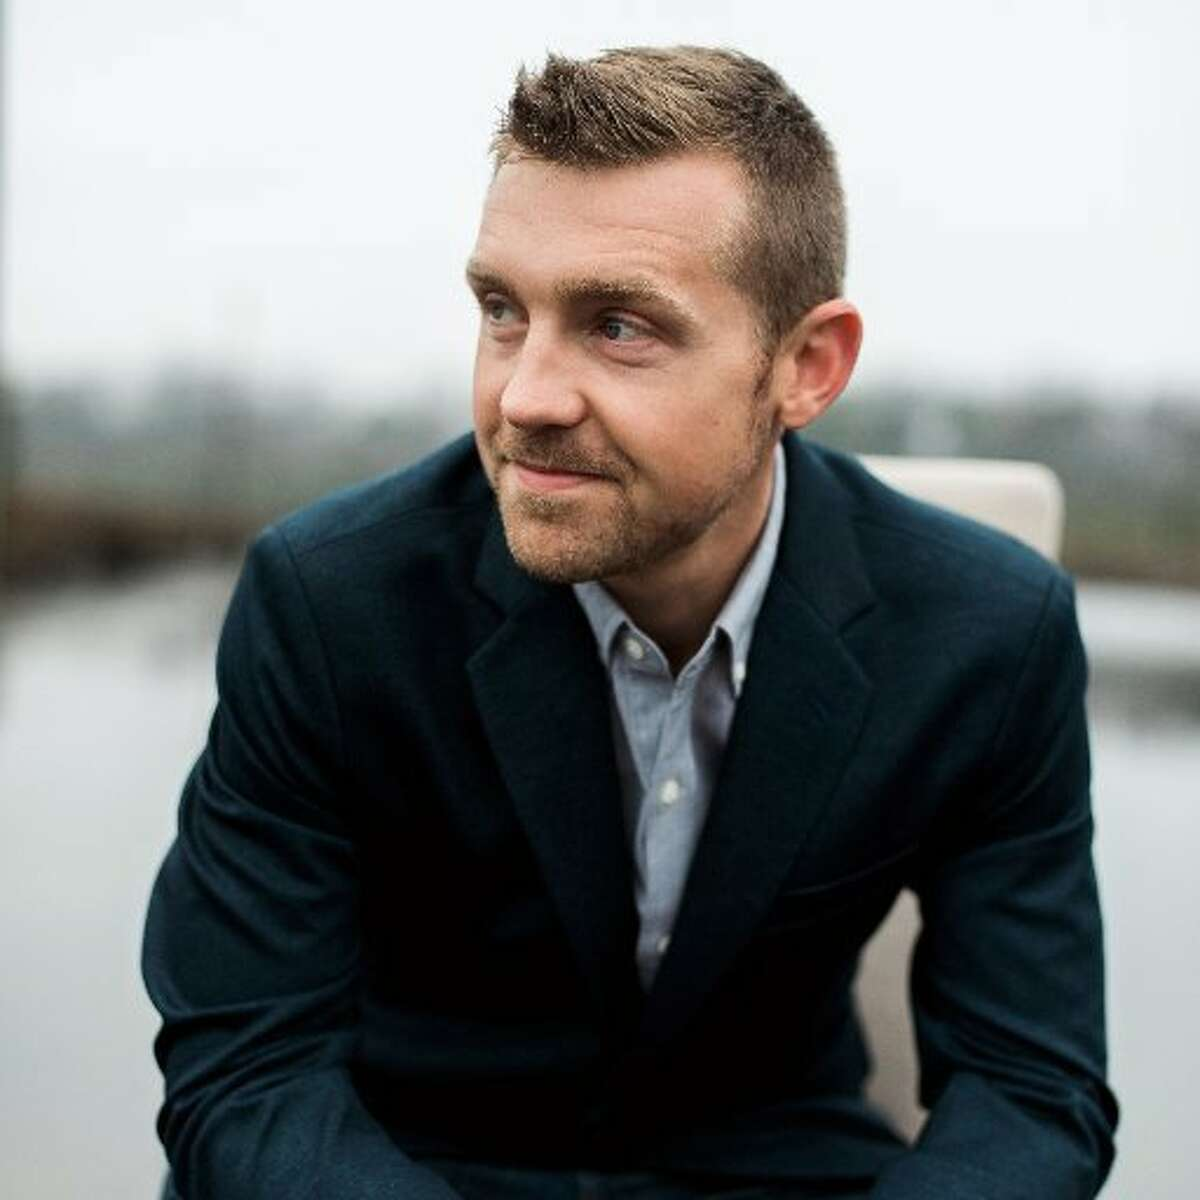 Darren Murph is head of remote at San Francisco's GitLab, where all employees work remotely.